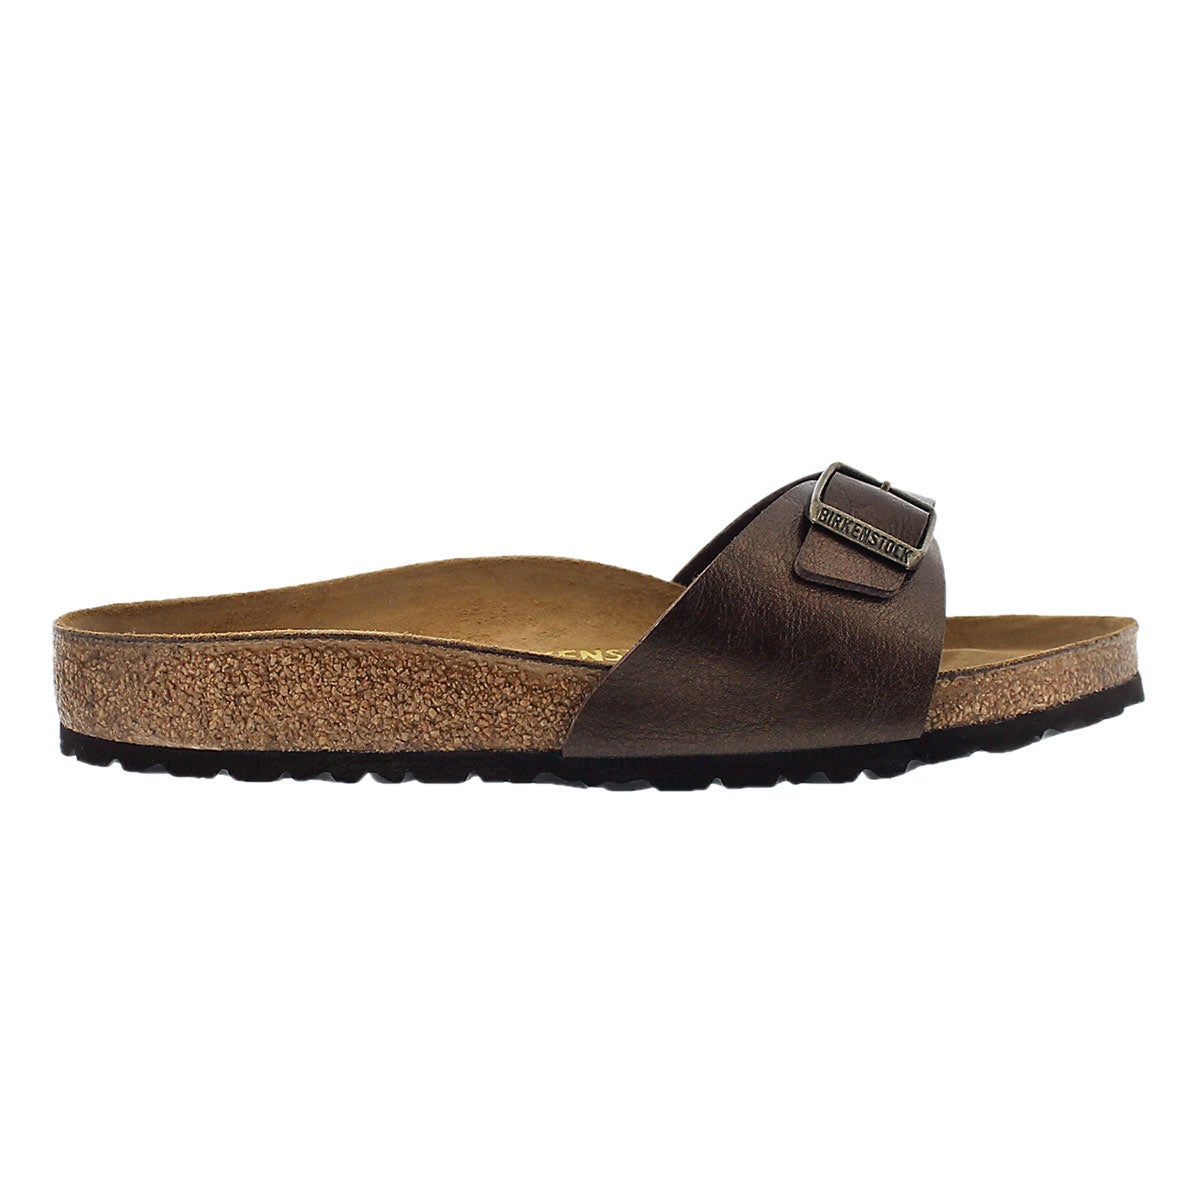 Lds Madrid toffee BF 1 strap sandal